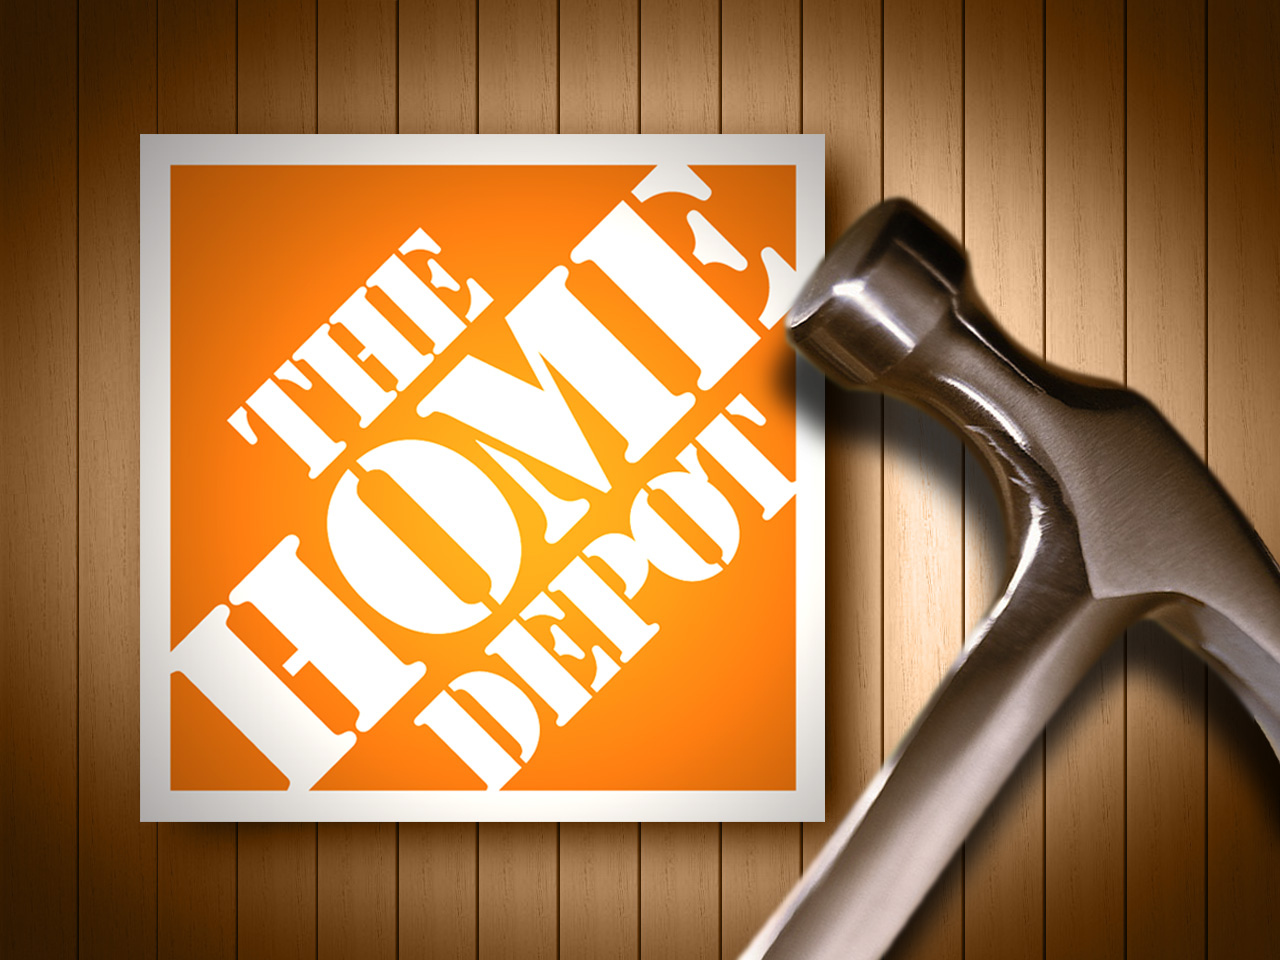 5d6a14d11b1 Home Depot - How Did I End Up HERE